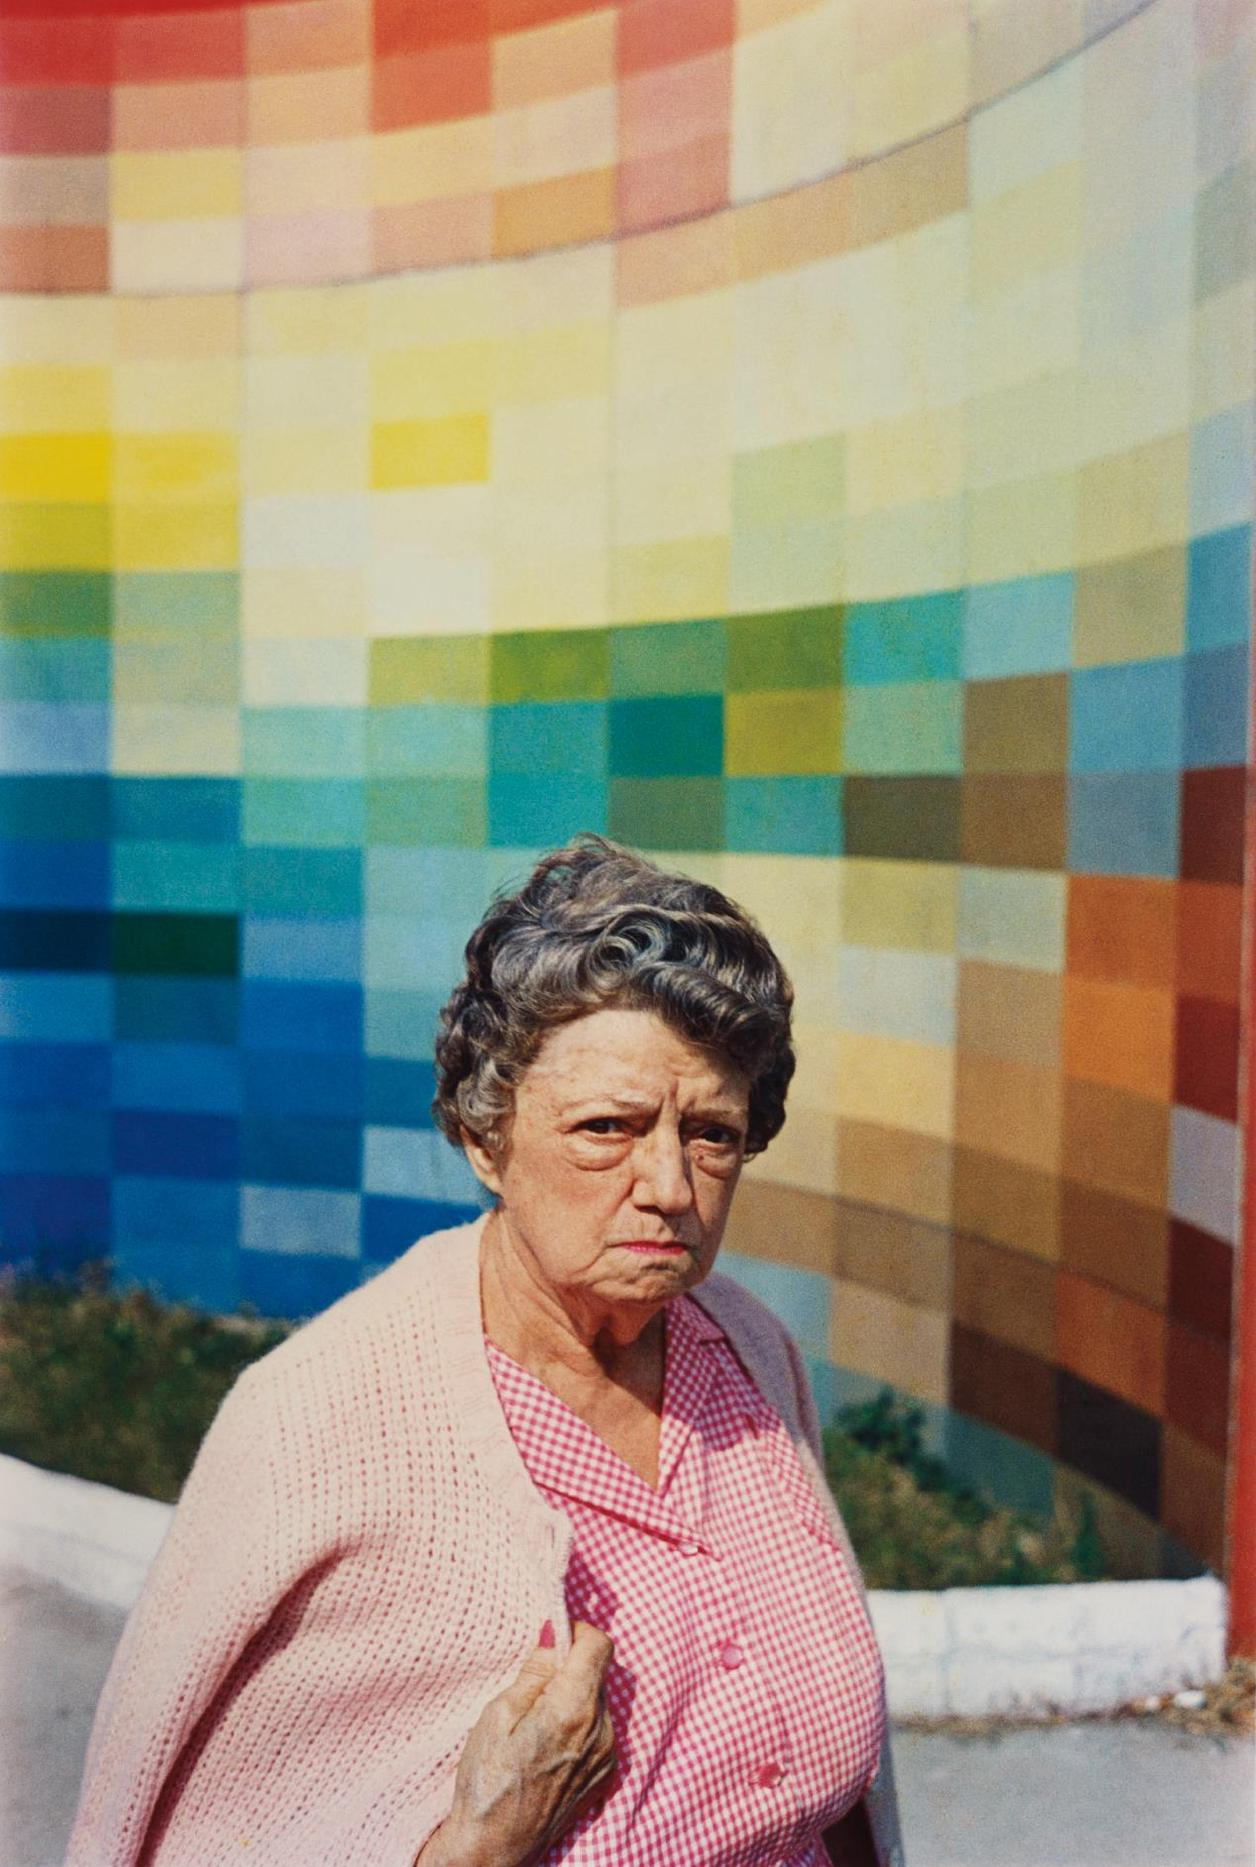 William Eggleston-Untitled (Gingham Woman, Albers Wall)-1974